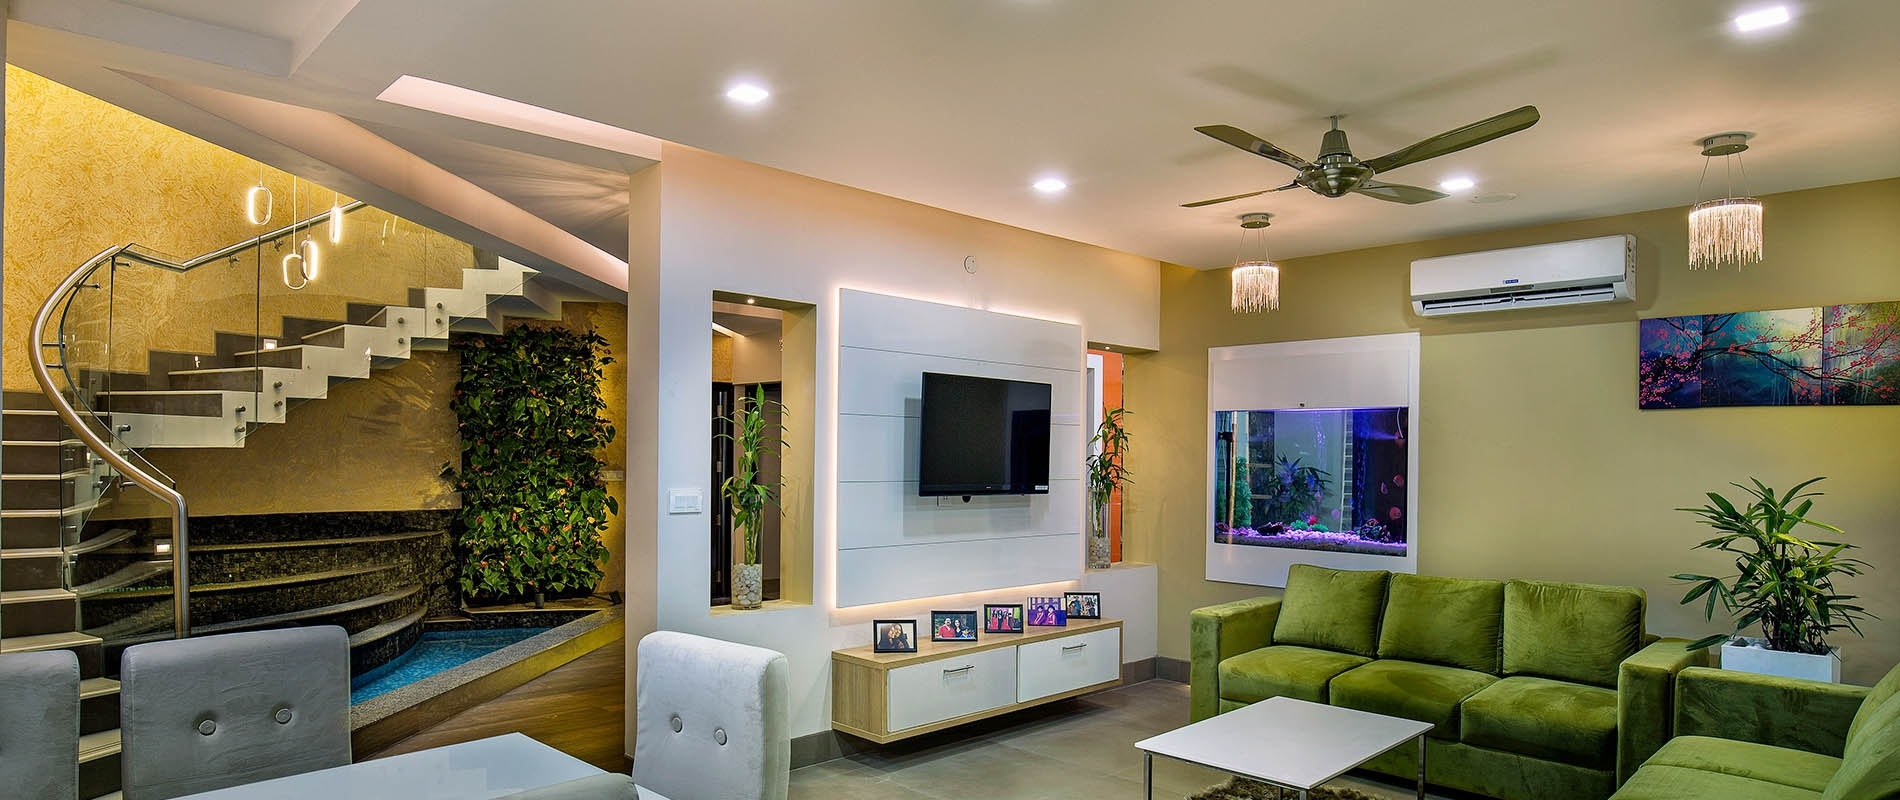 Significant Things To Consider In Interior Design